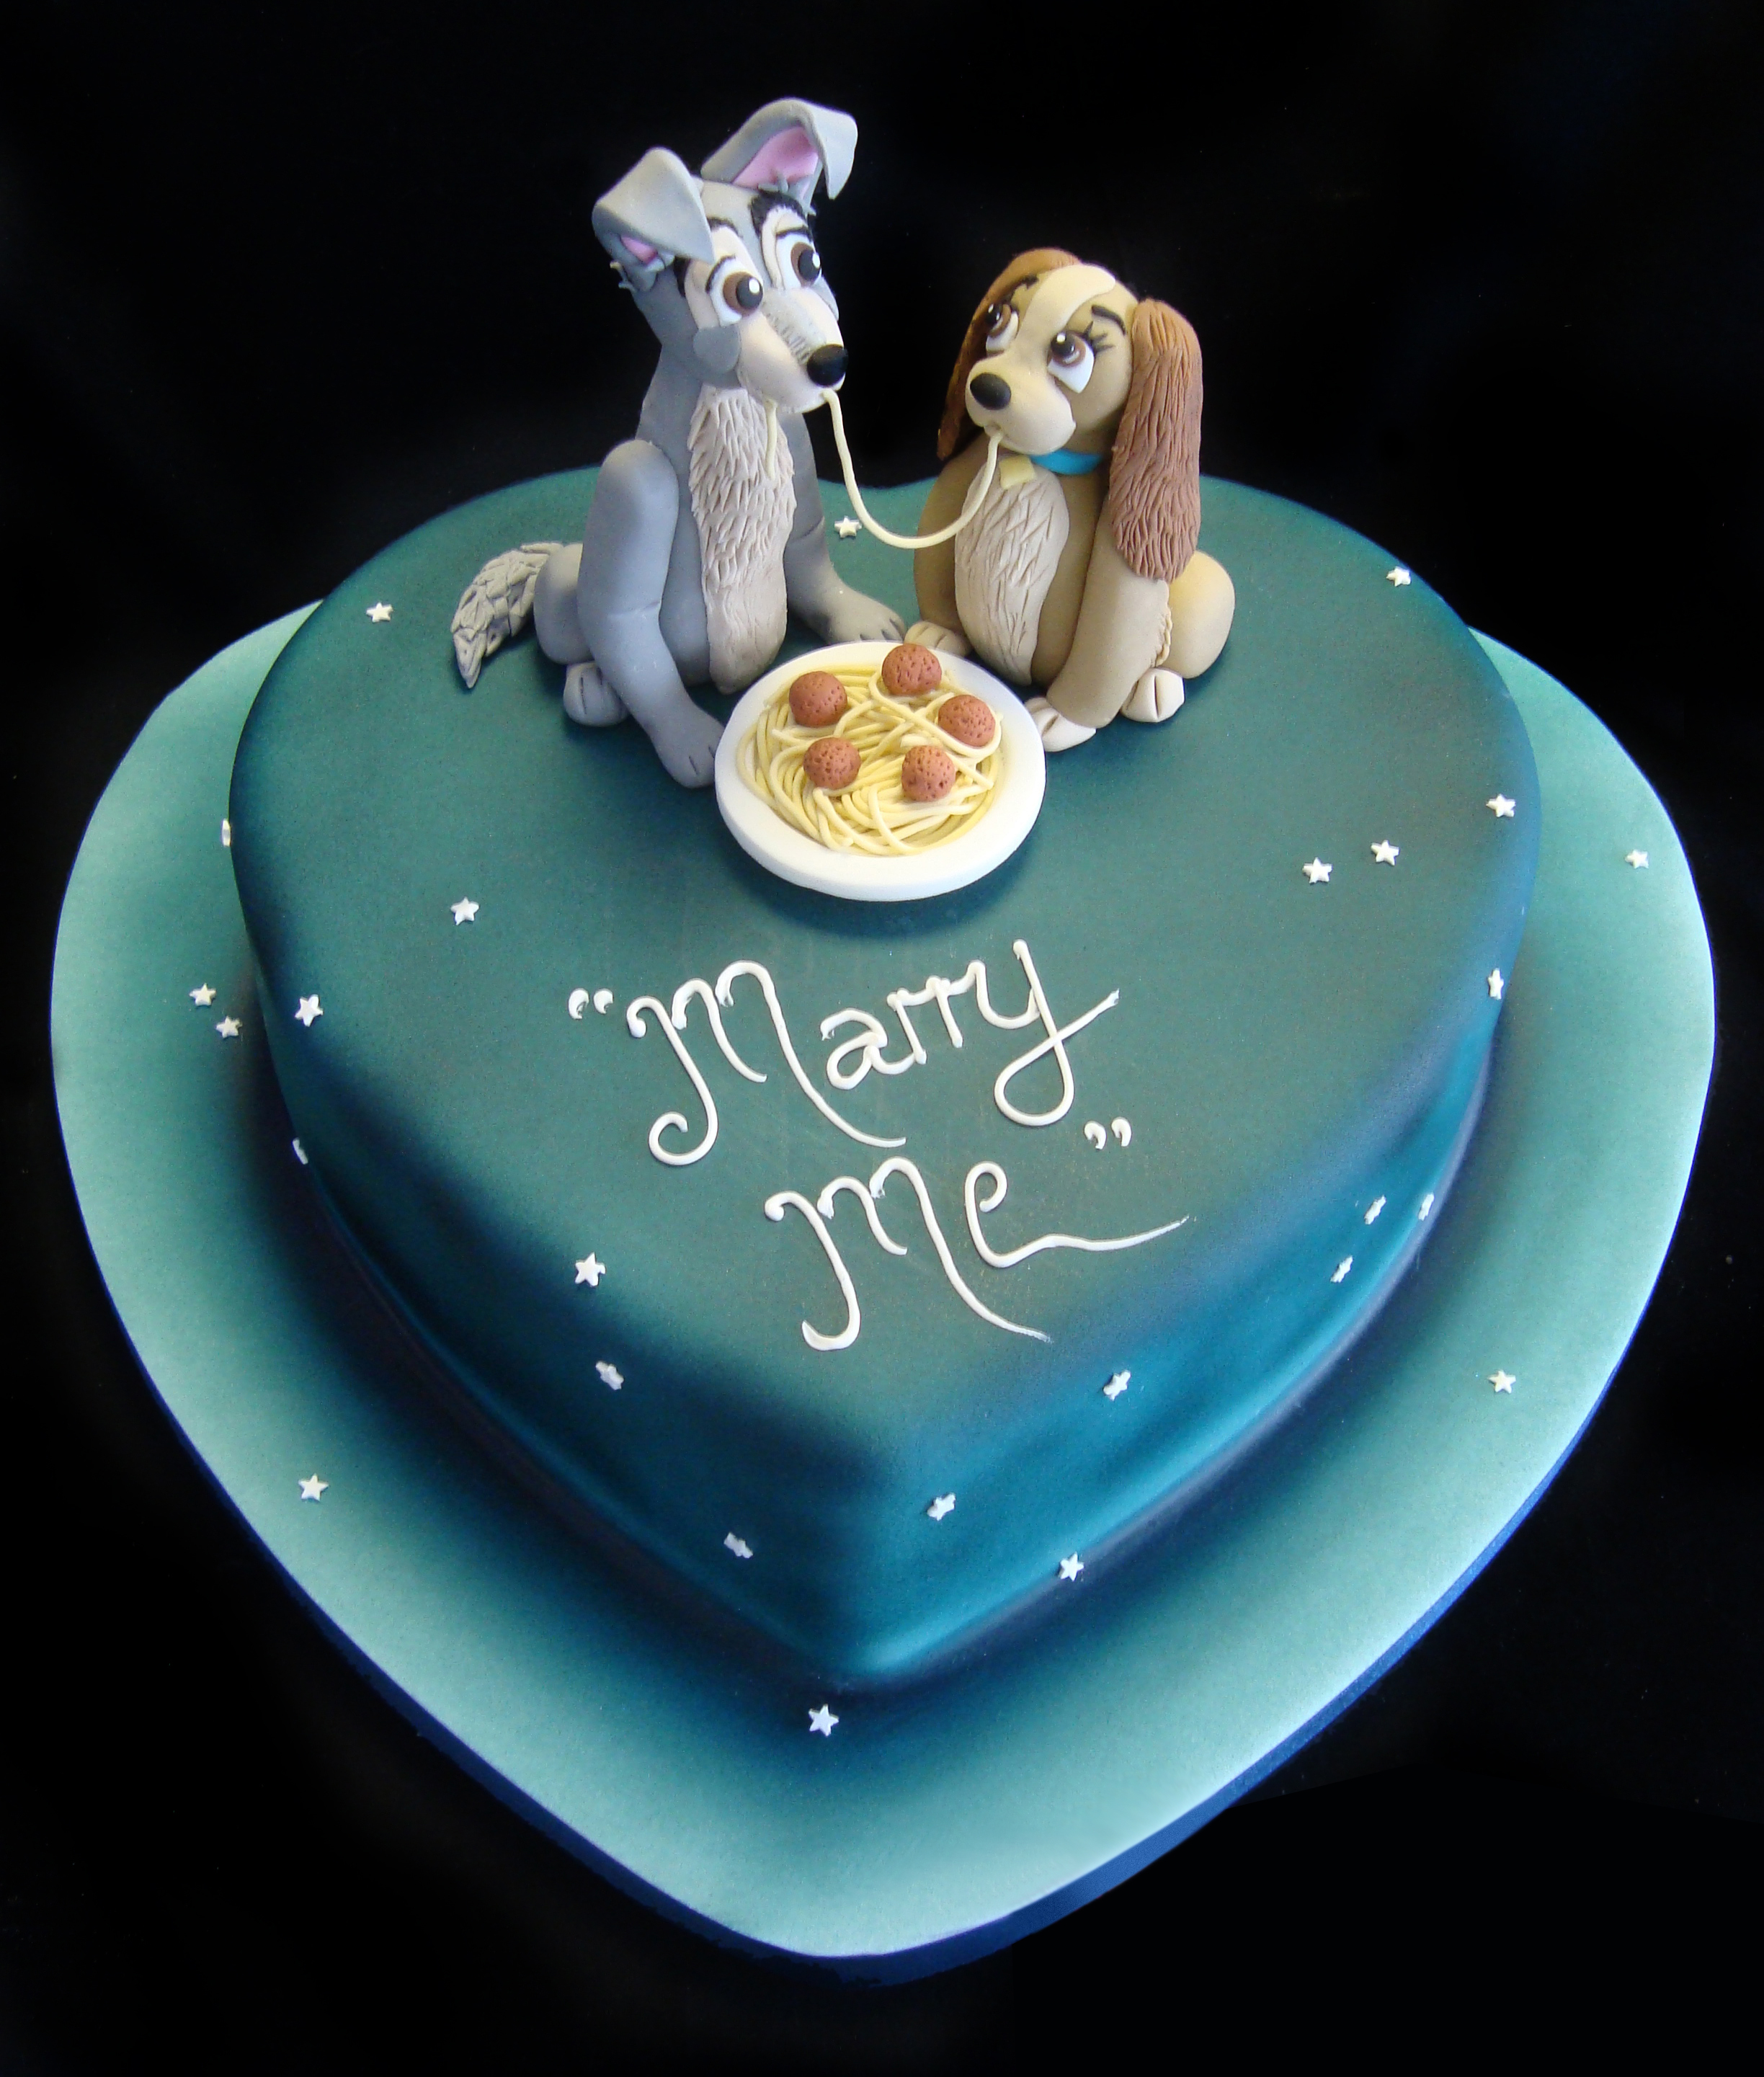 Celebration Cakes Sutton Coldfield Tamworth Wedding Birthday